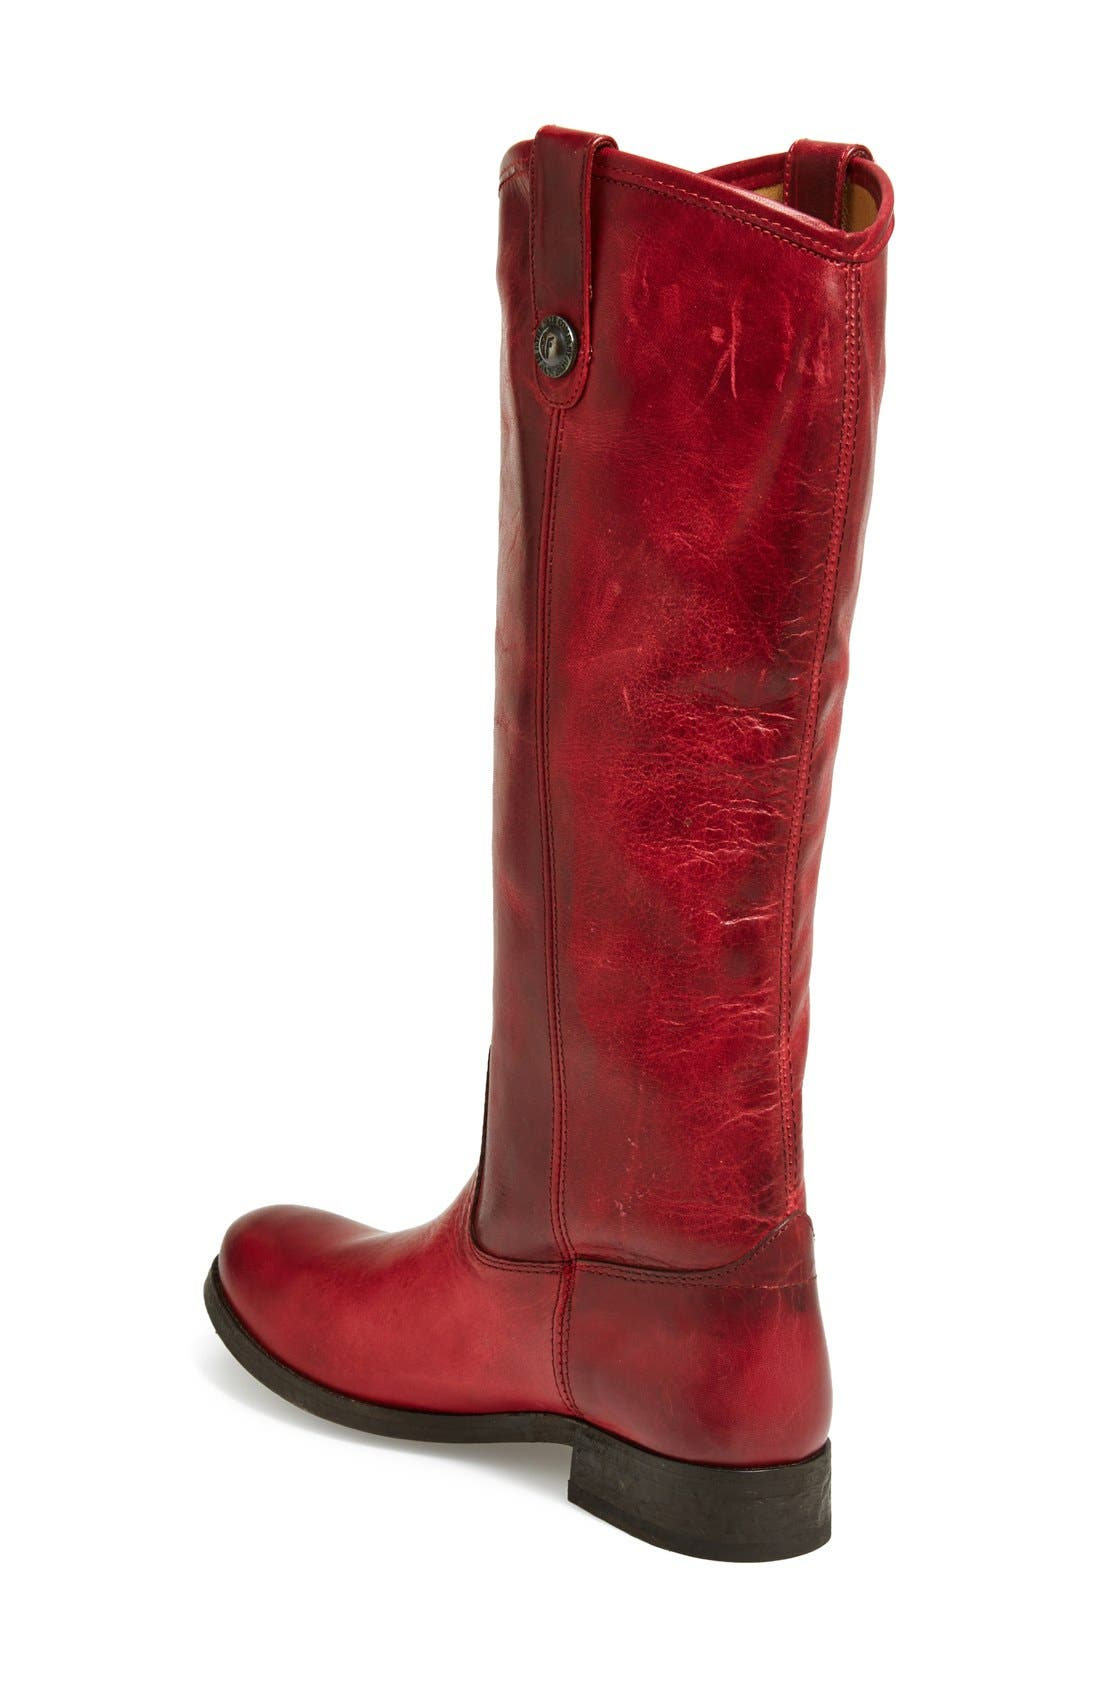 'Melissa Button' Leather Riding Boot,                             Alternate thumbnail 125, color,